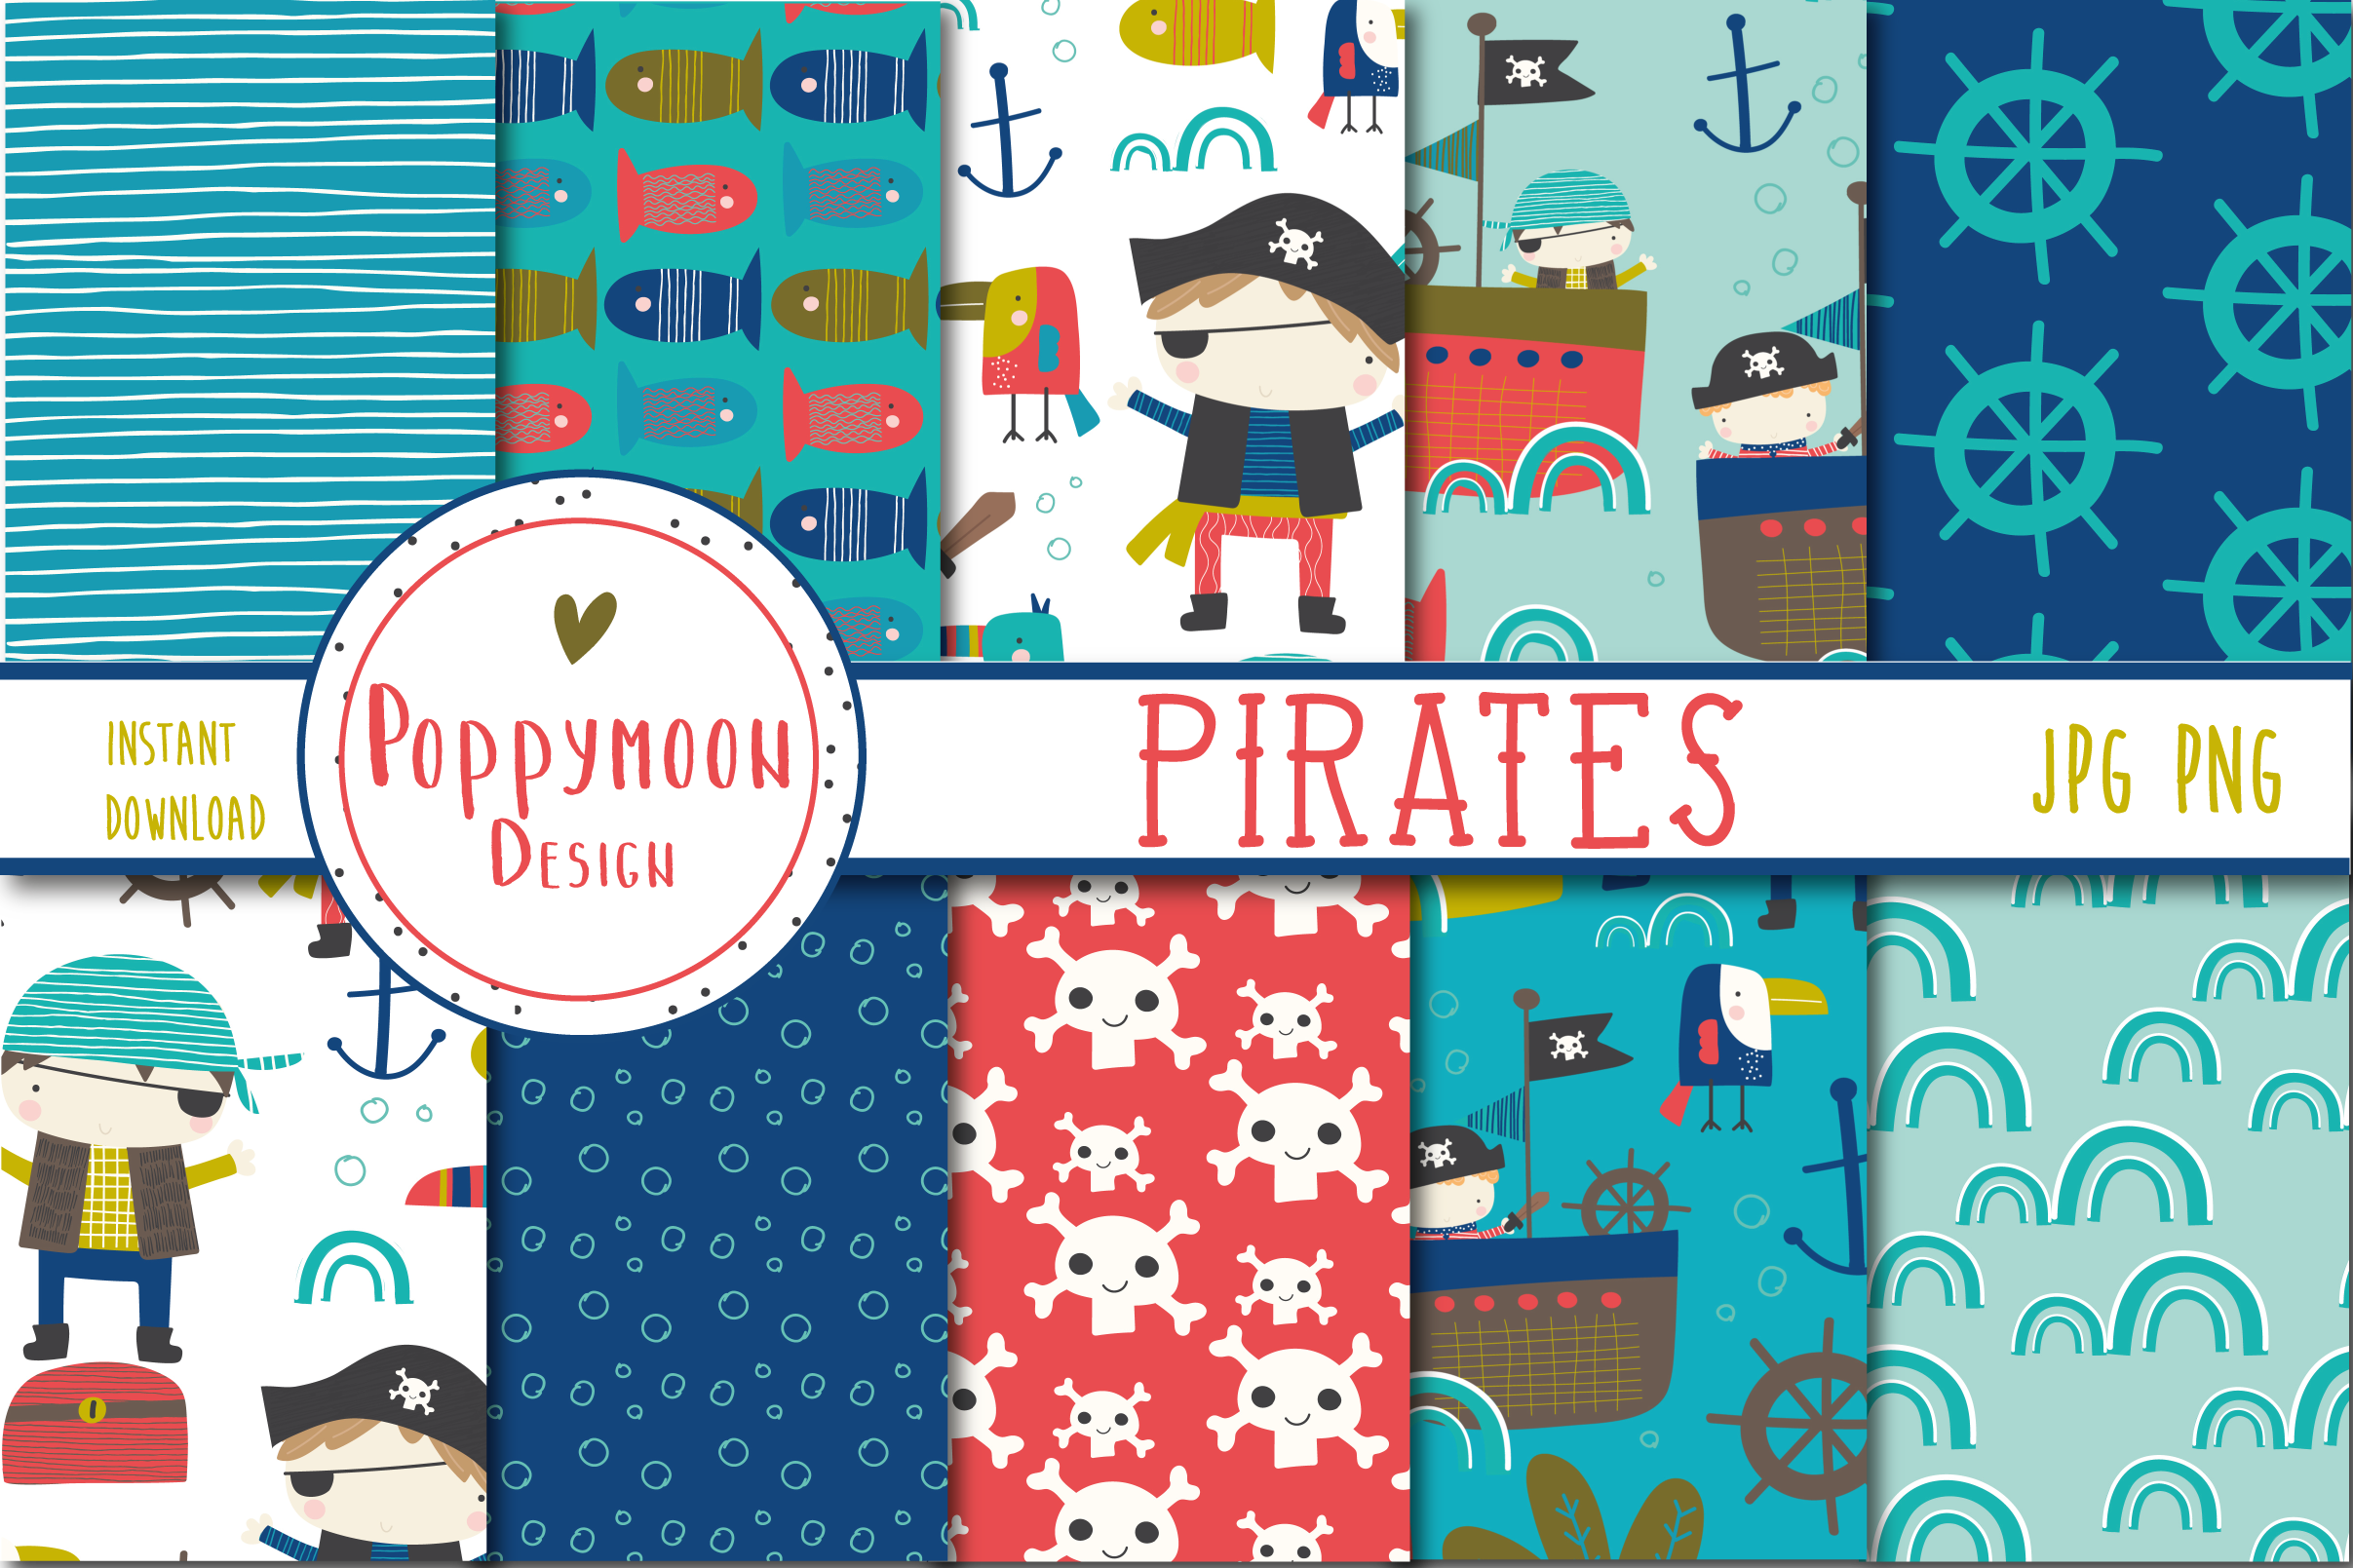 Download Free Pirates Fun Paper Graphic By Poppymoondesign Creative Fabrica for Cricut Explore, Silhouette and other cutting machines.